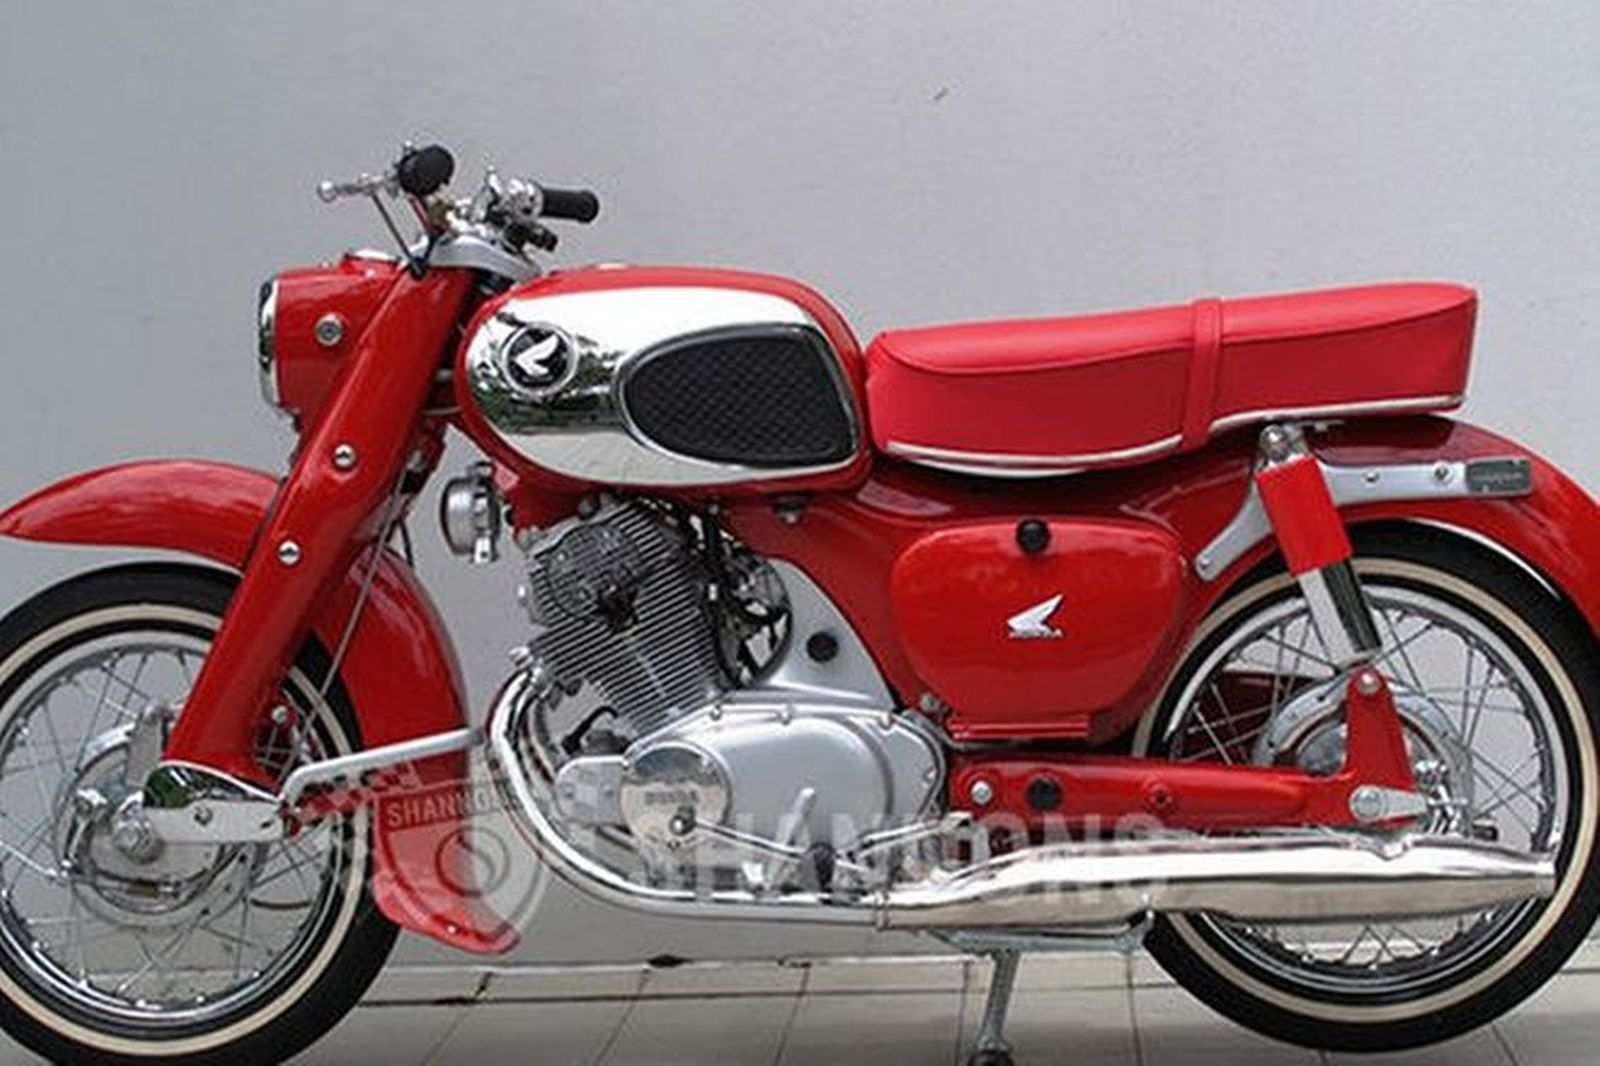 Sold Honda St70 Dax Trail Bike Auctions Lot 1 Shannons 1970 Ct70 Sapphire Blue Similar Vehicle Sales